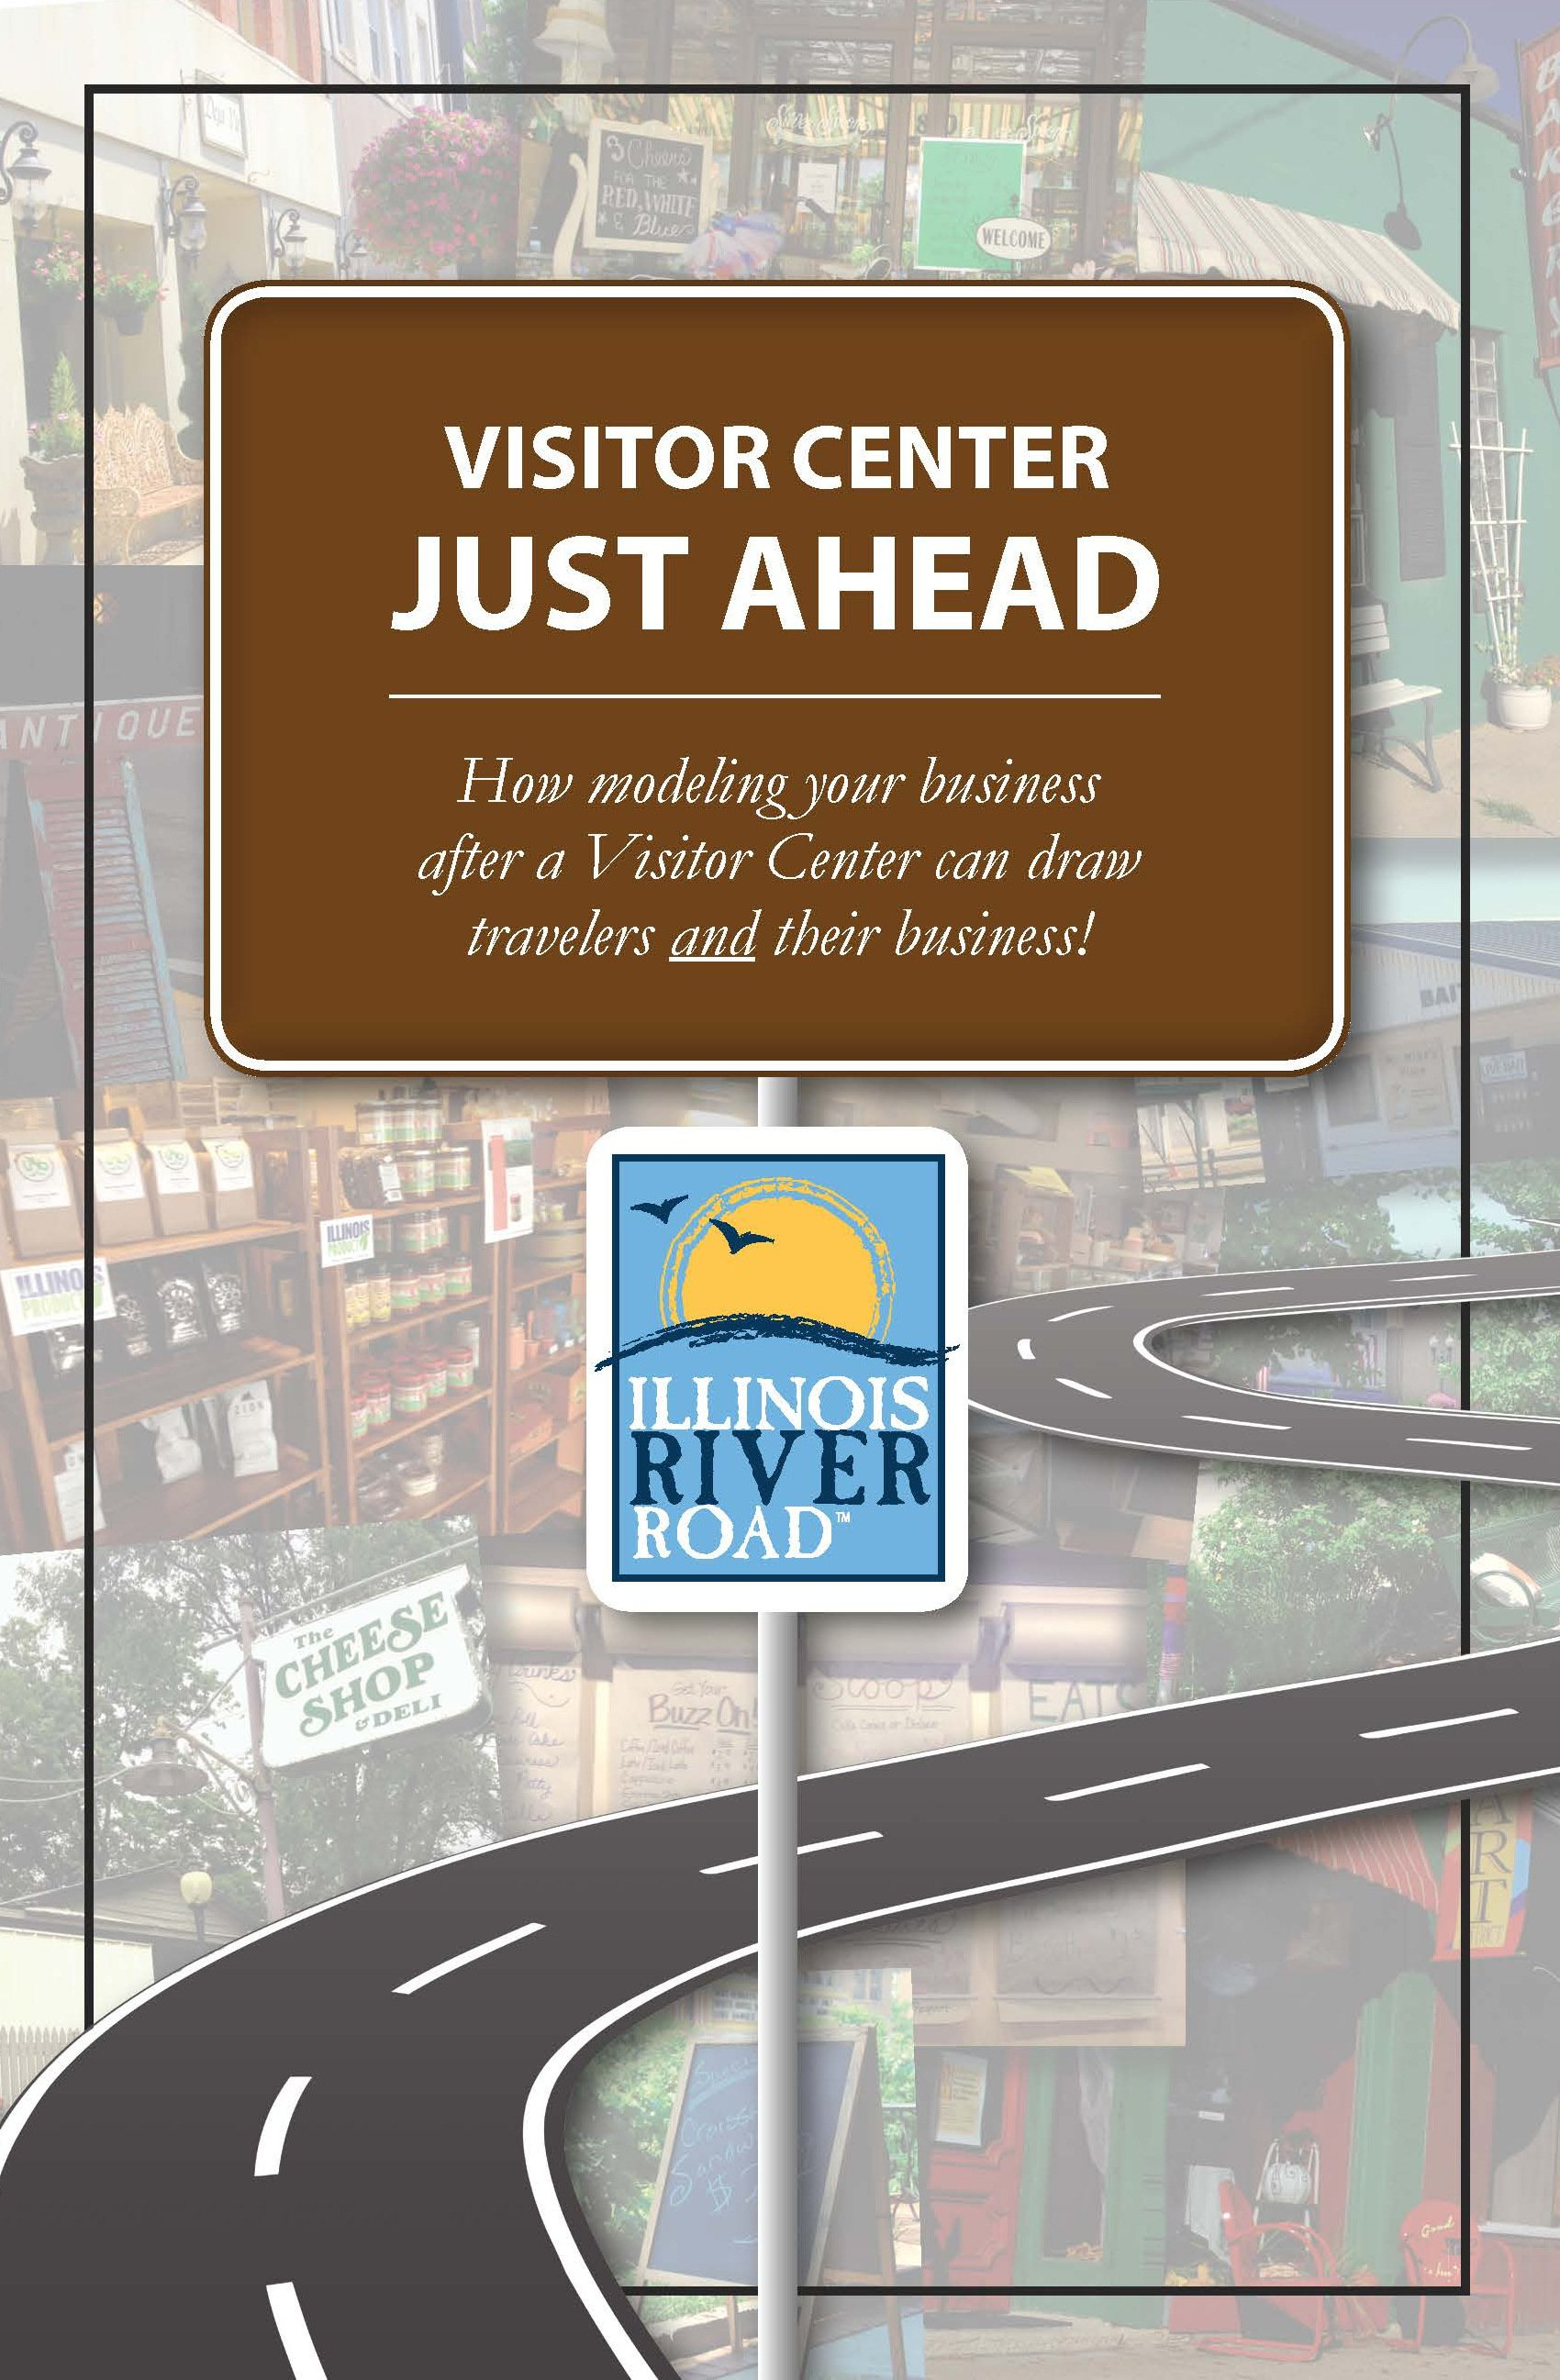 Visitors Center ahead sign above road graphic